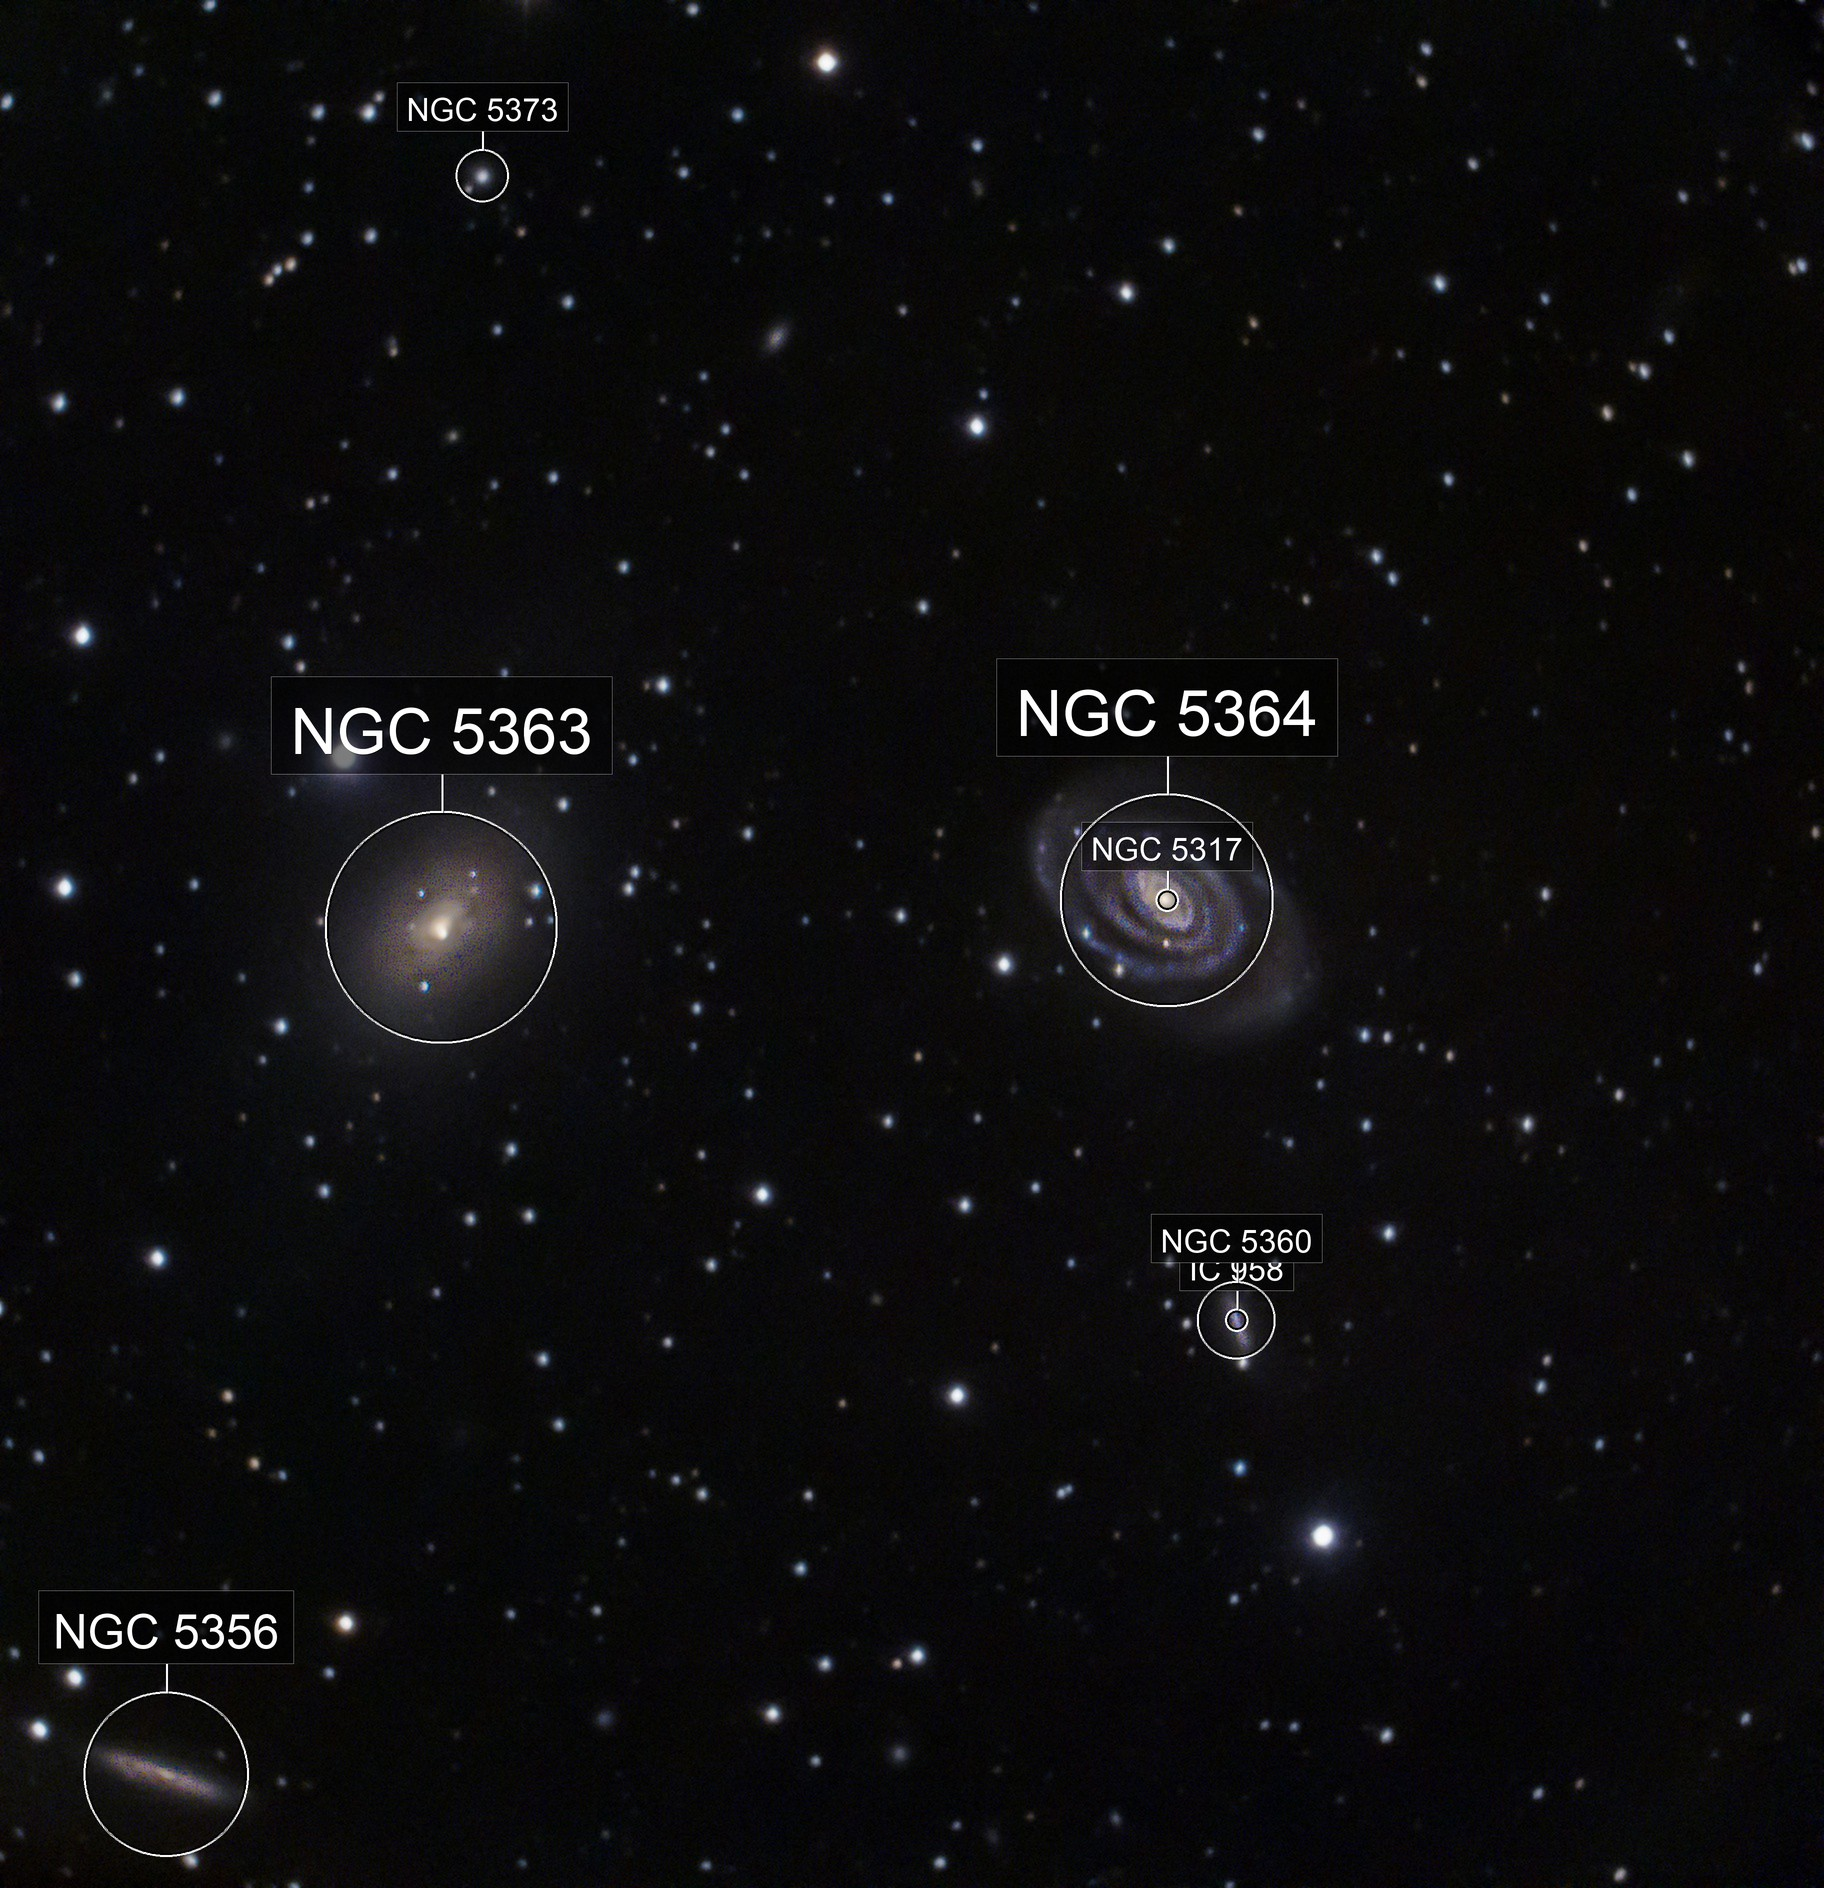 NGC 5363 & NGC 5317 in the constellation Virgo.